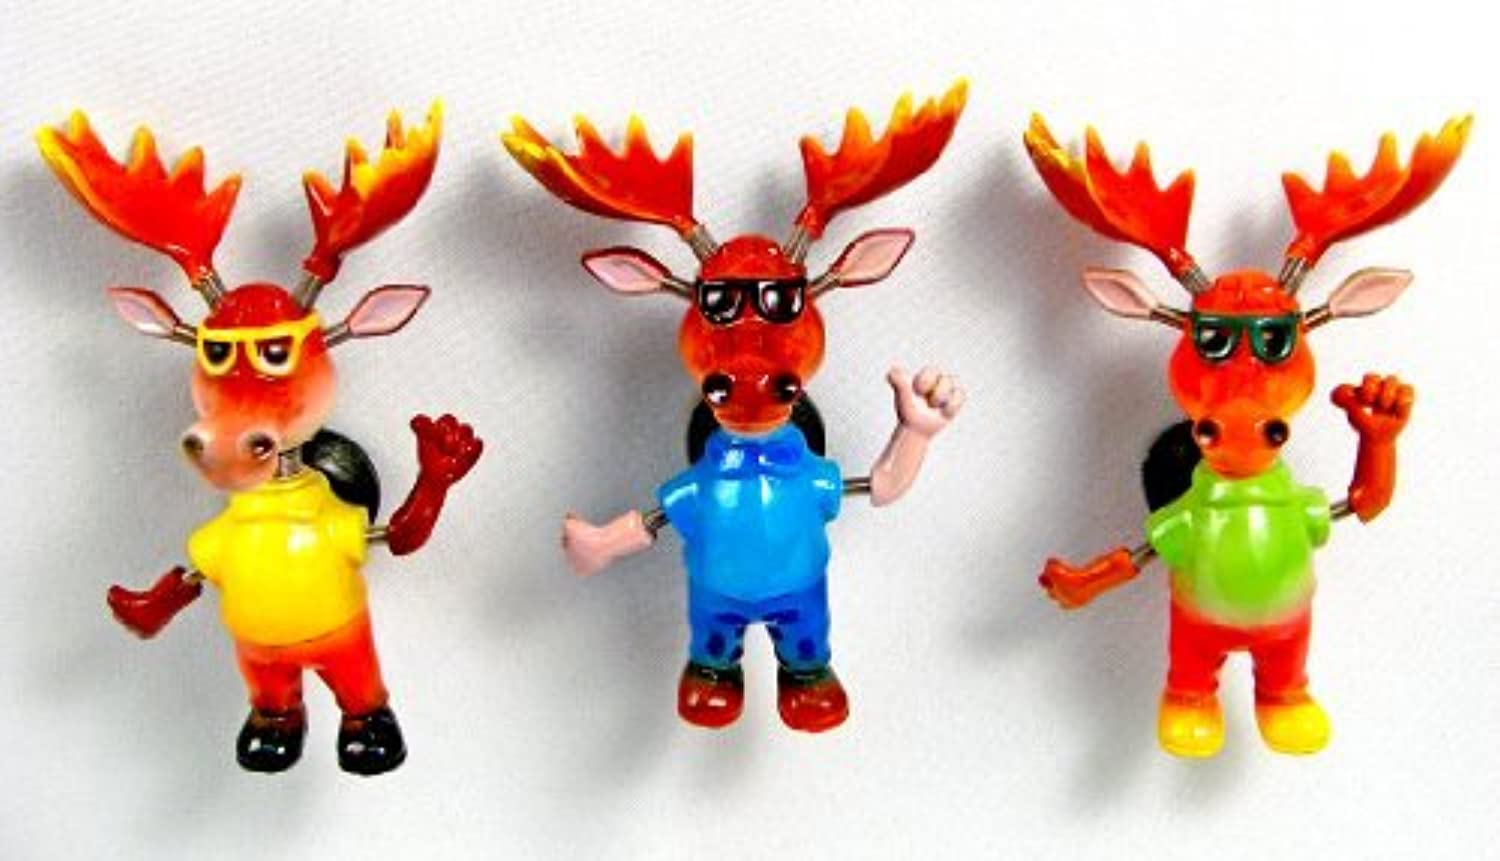 Puzzled Cool Moose Refrigerator Bobble Magnet (Set of 3) by Puzzled